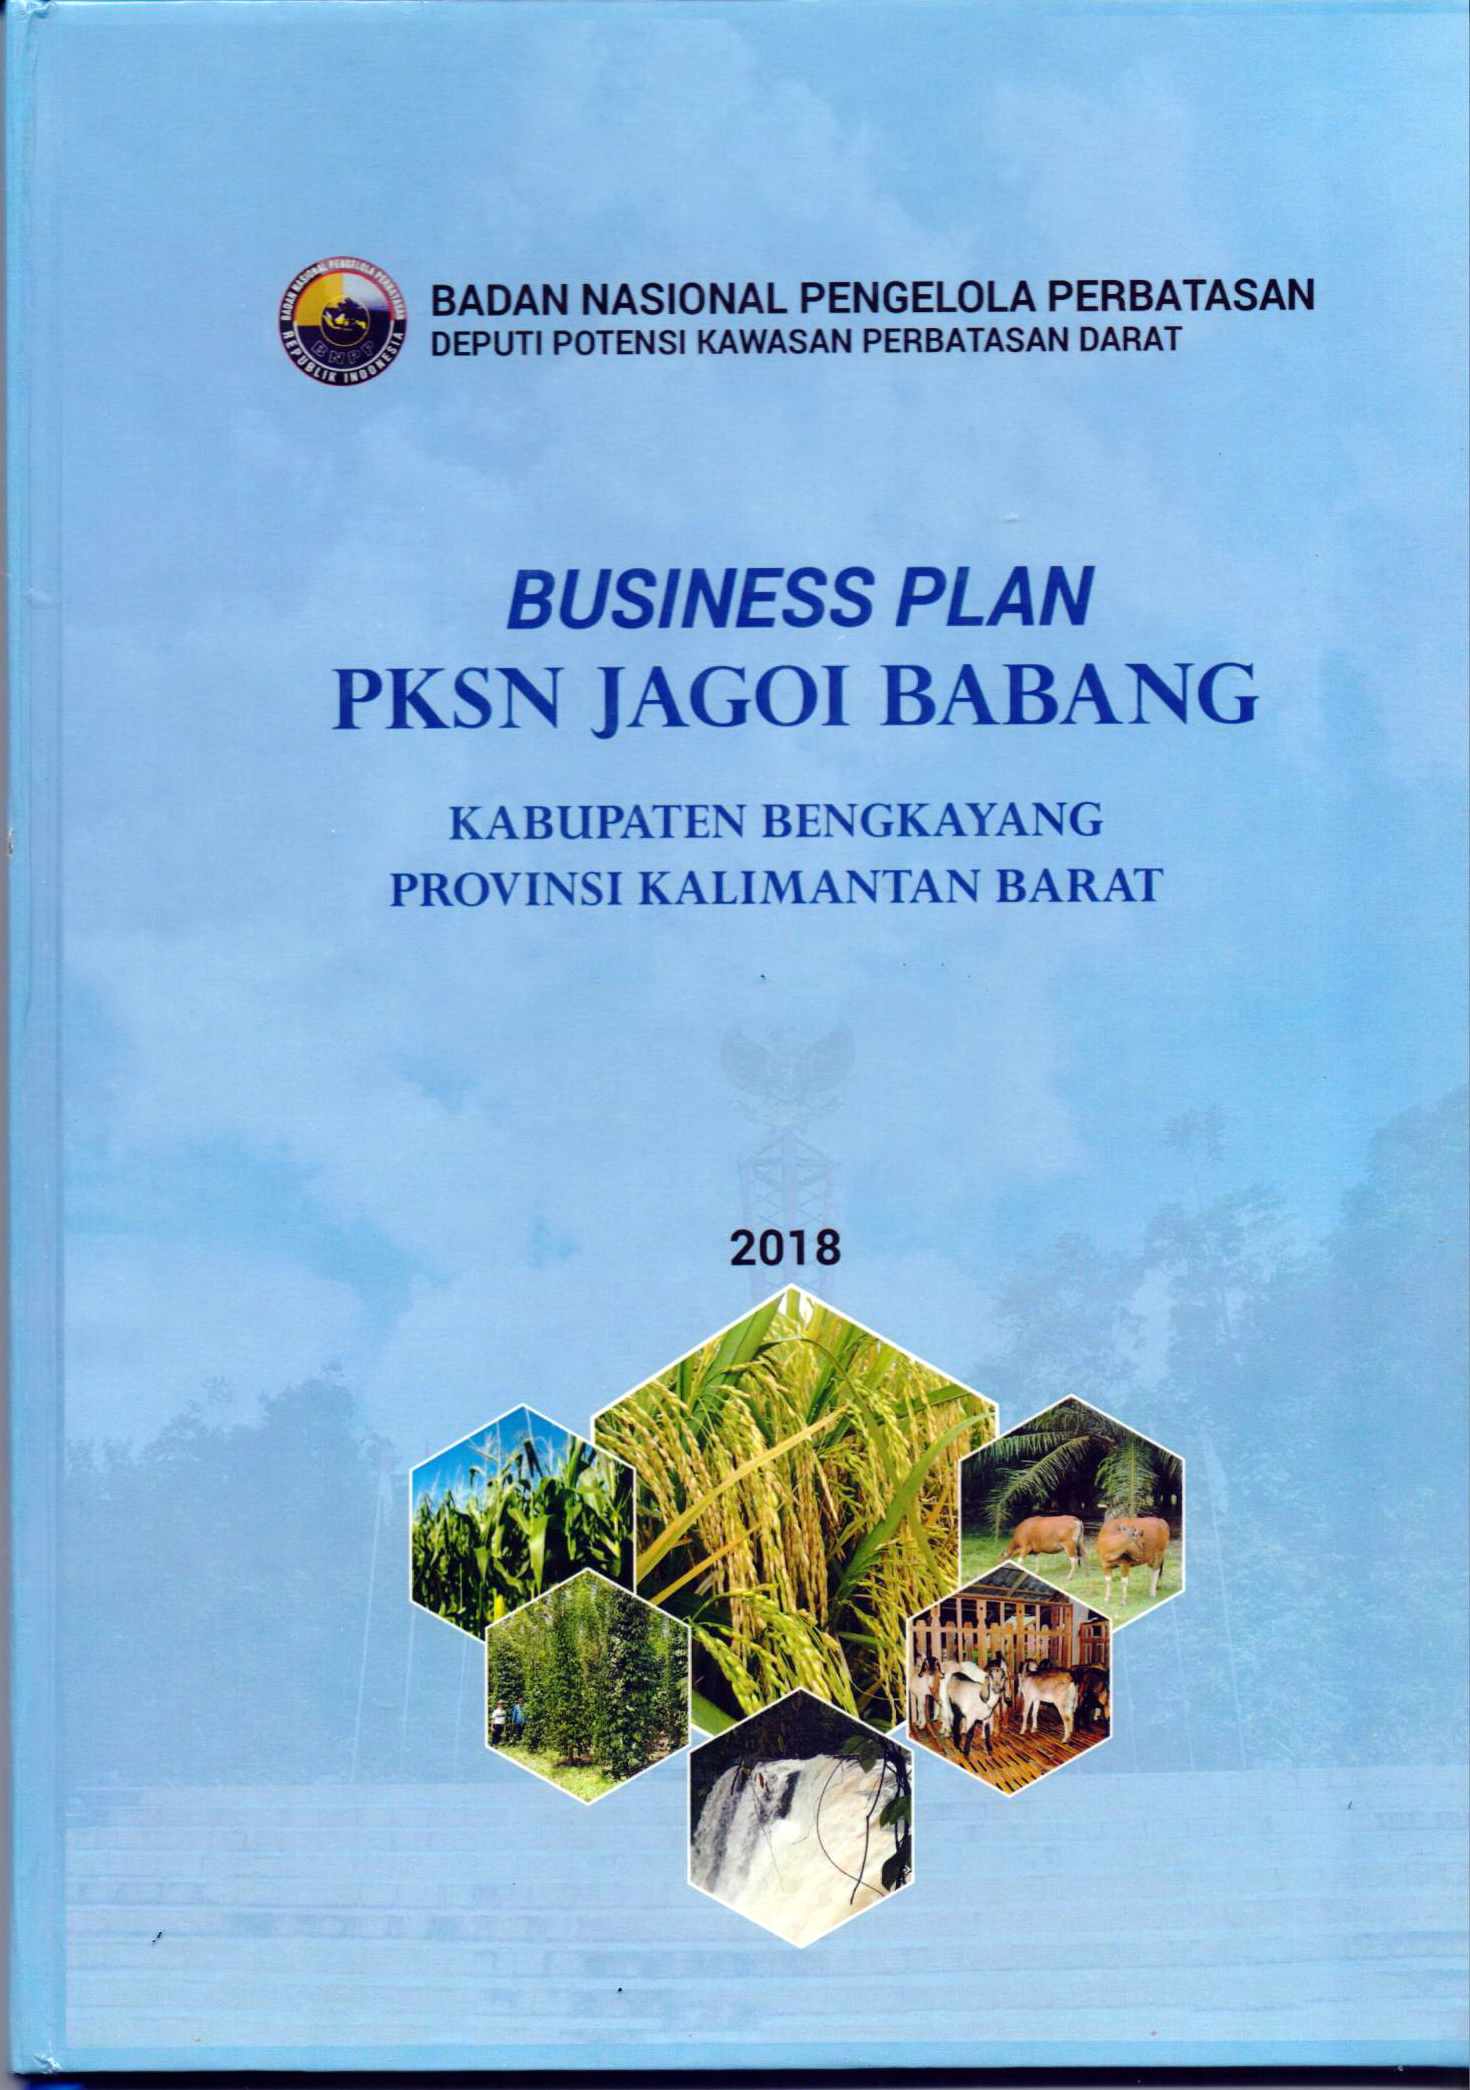 Business Plan PKSN Jagoi Babang